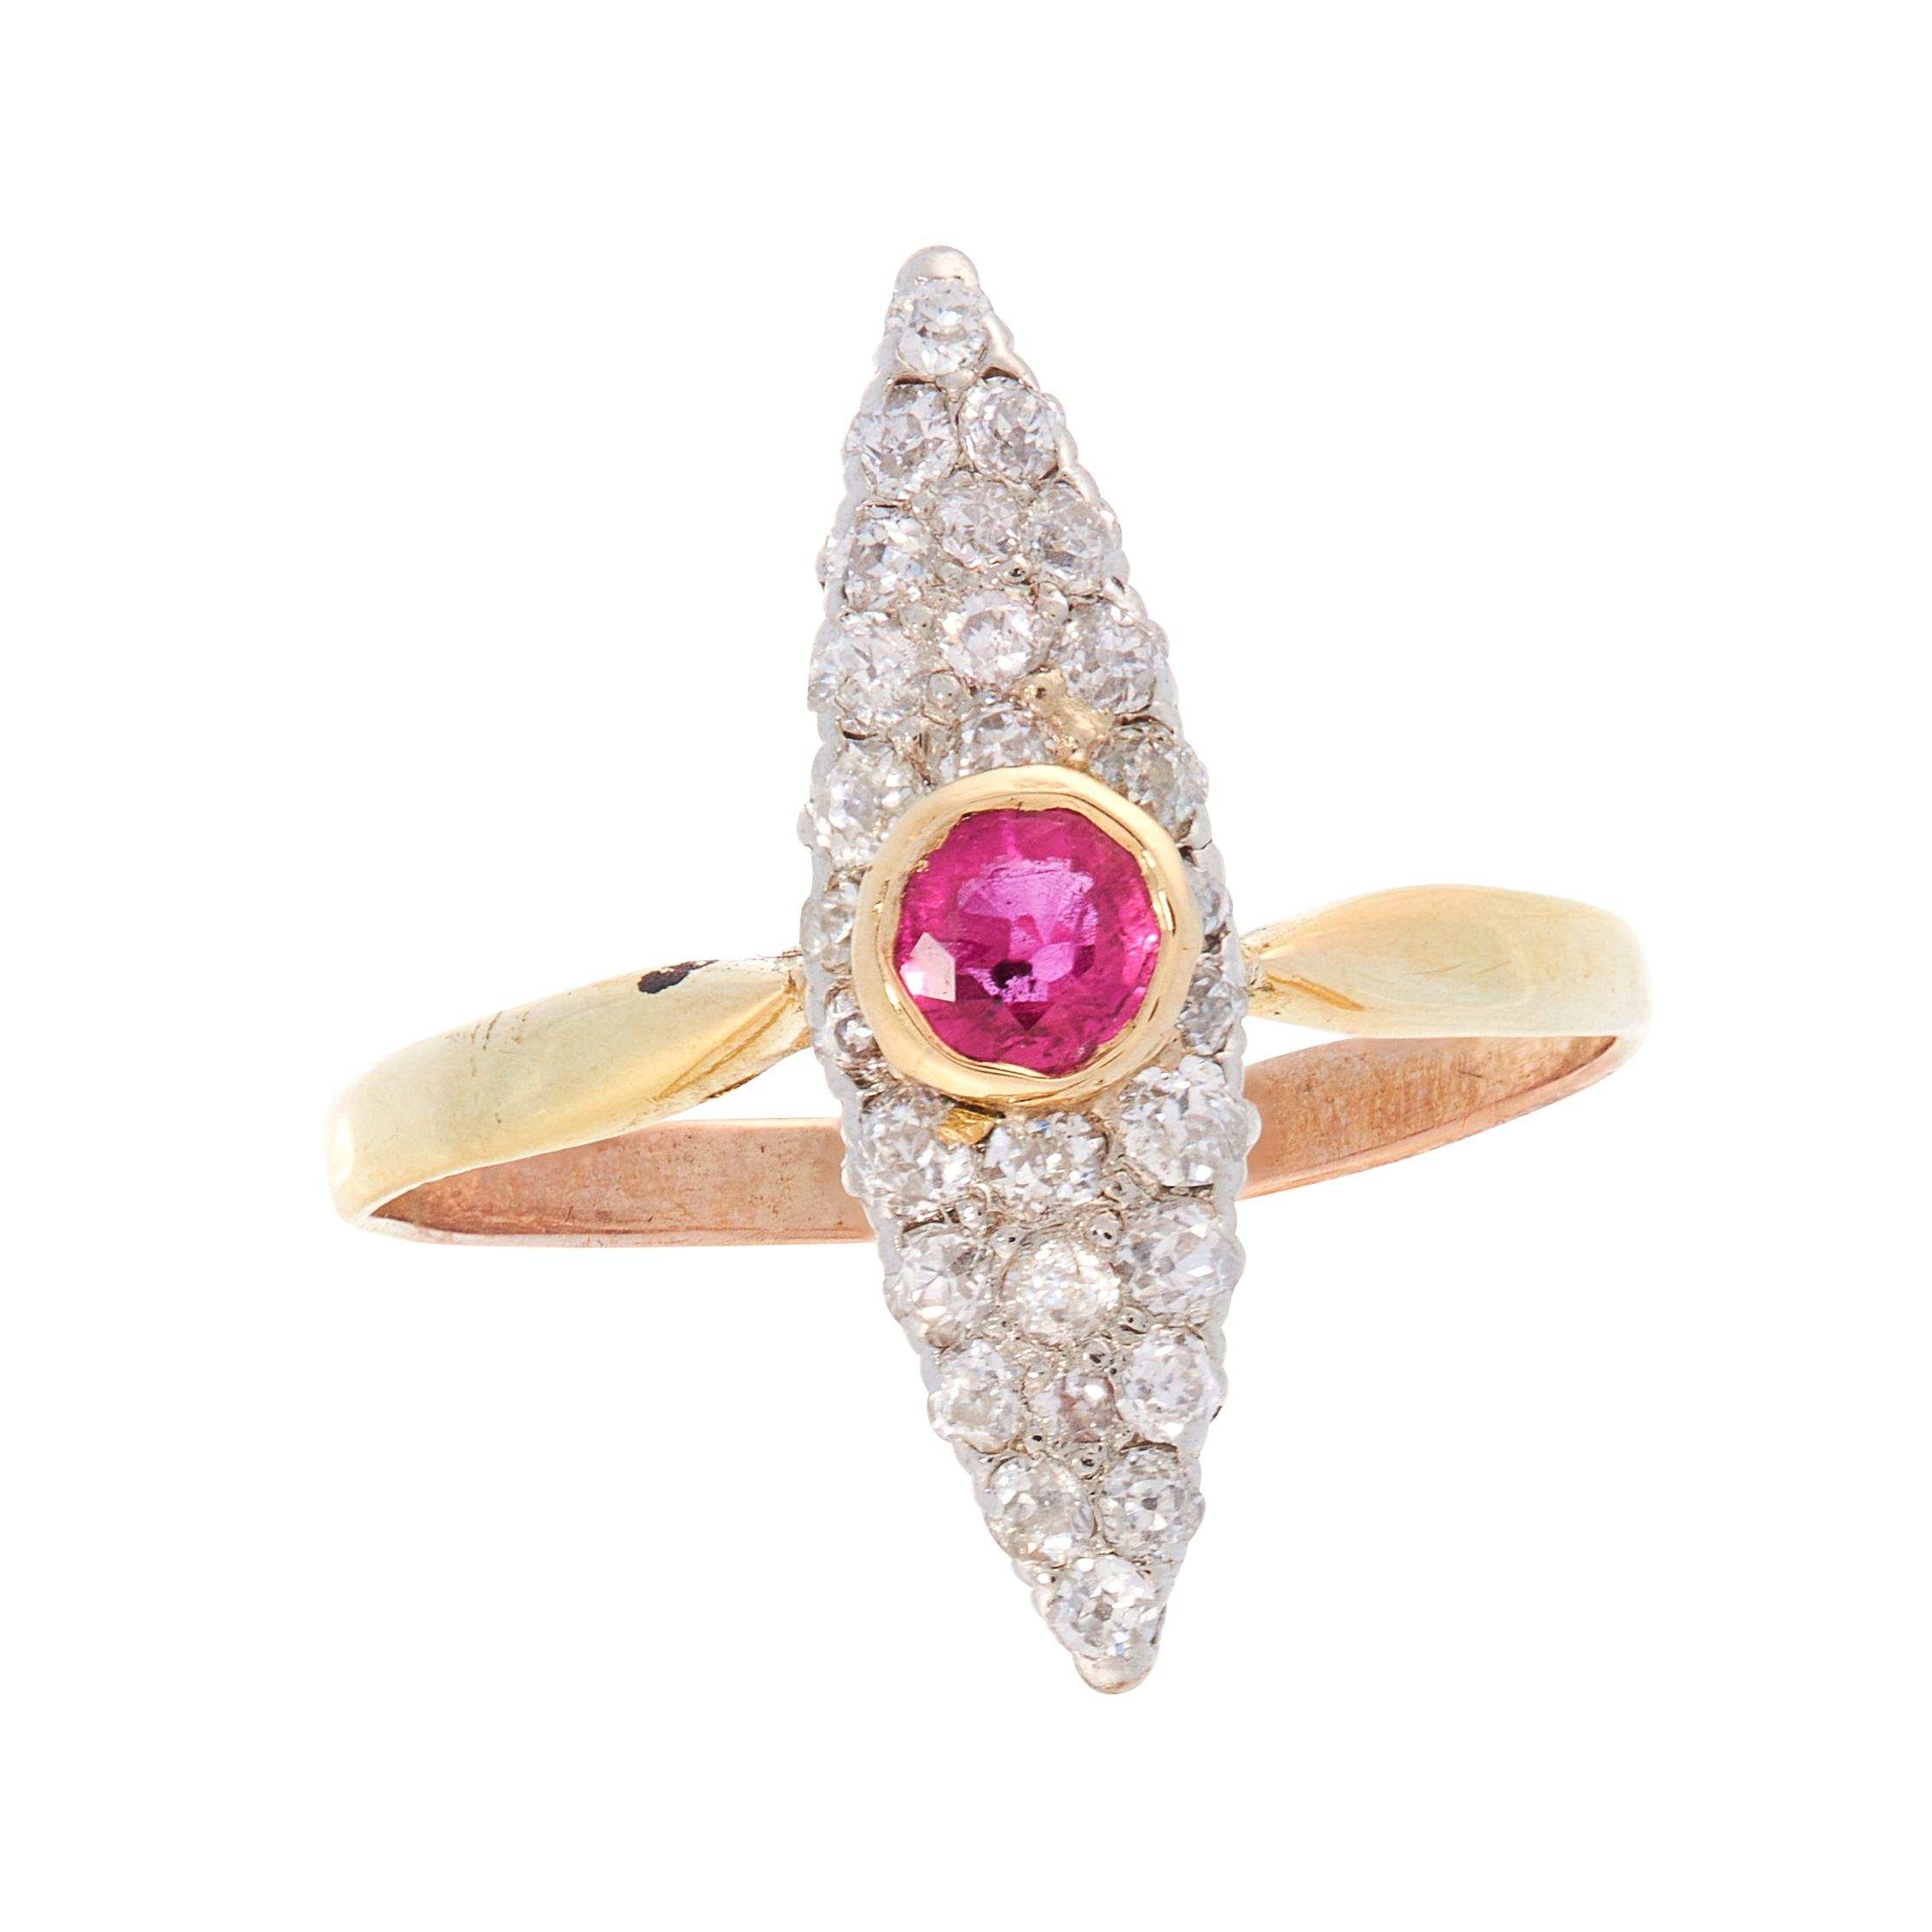 A RUBY AND DIAMOND DRESS RING in high carat yellow gold, the marquise shaped face set with a round